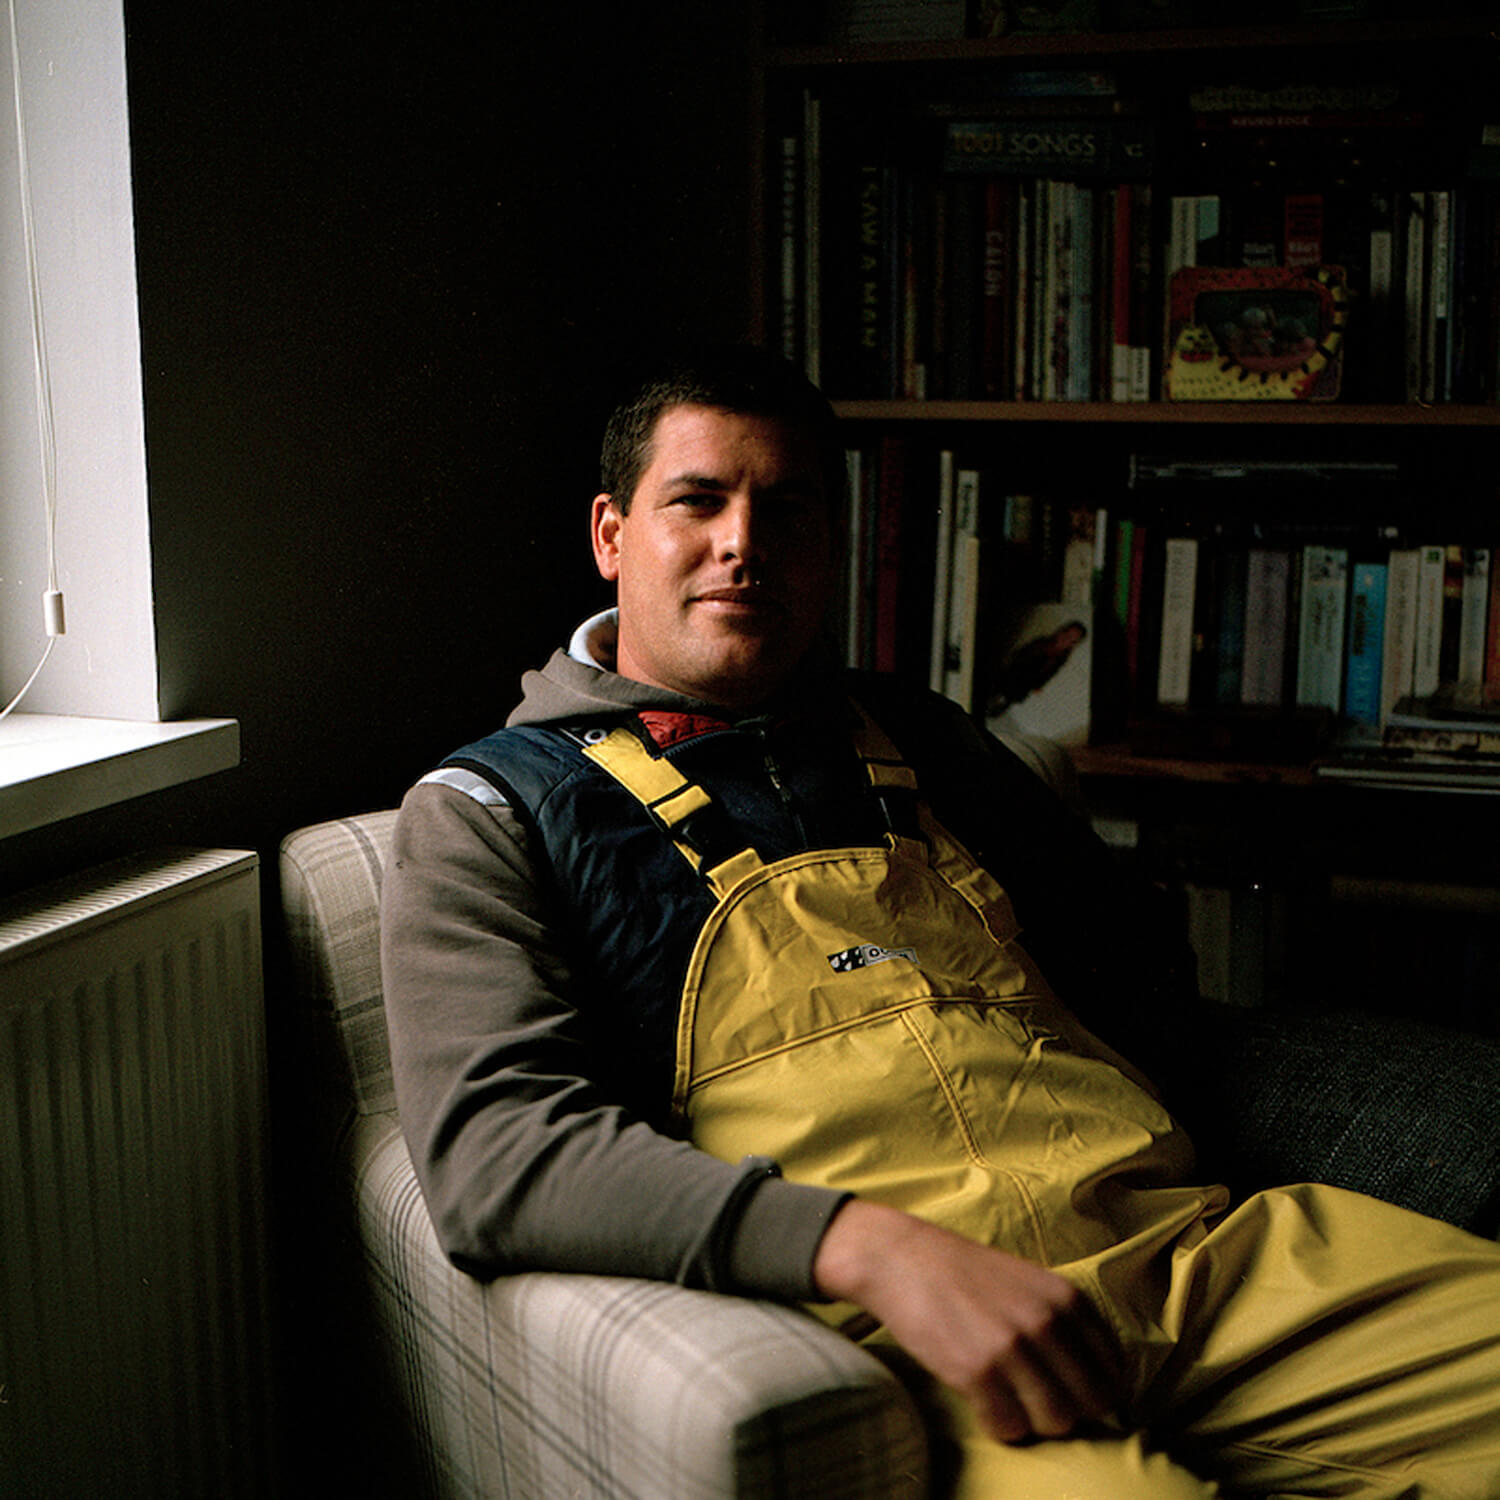 Eva Watkins - Old Salt the south west collective of photography portrait of fisherman in yellow gear